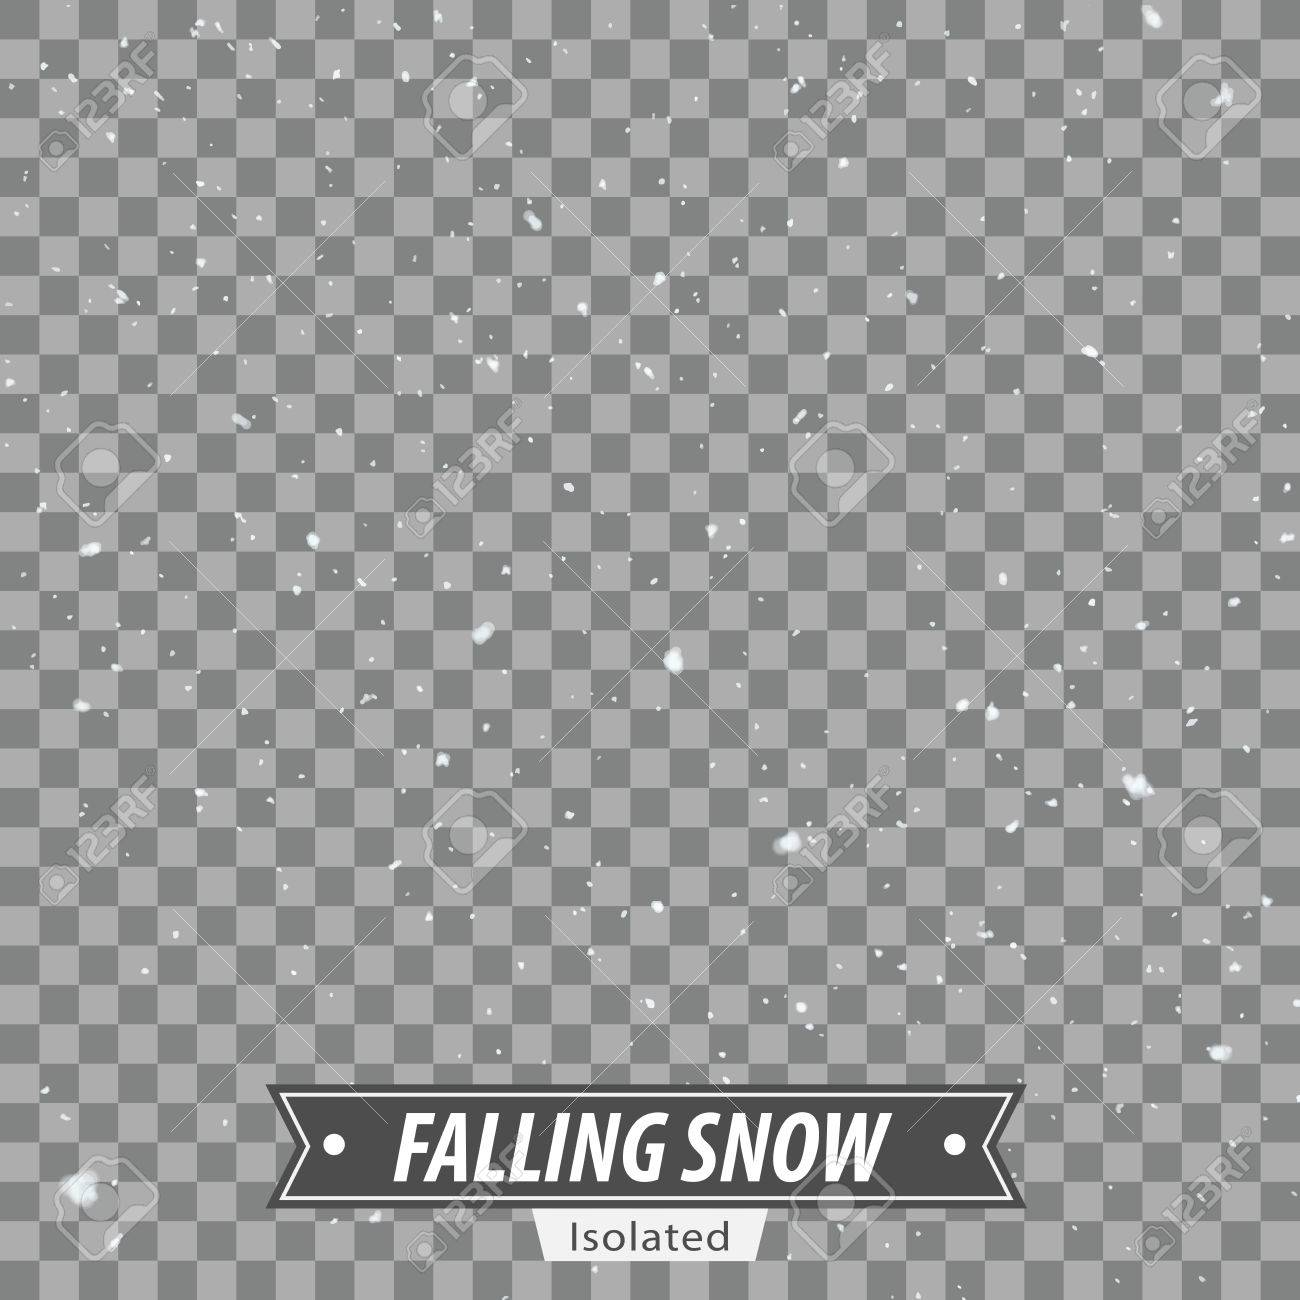 Isolated Falling Snow EPS10 Vector - 51756190